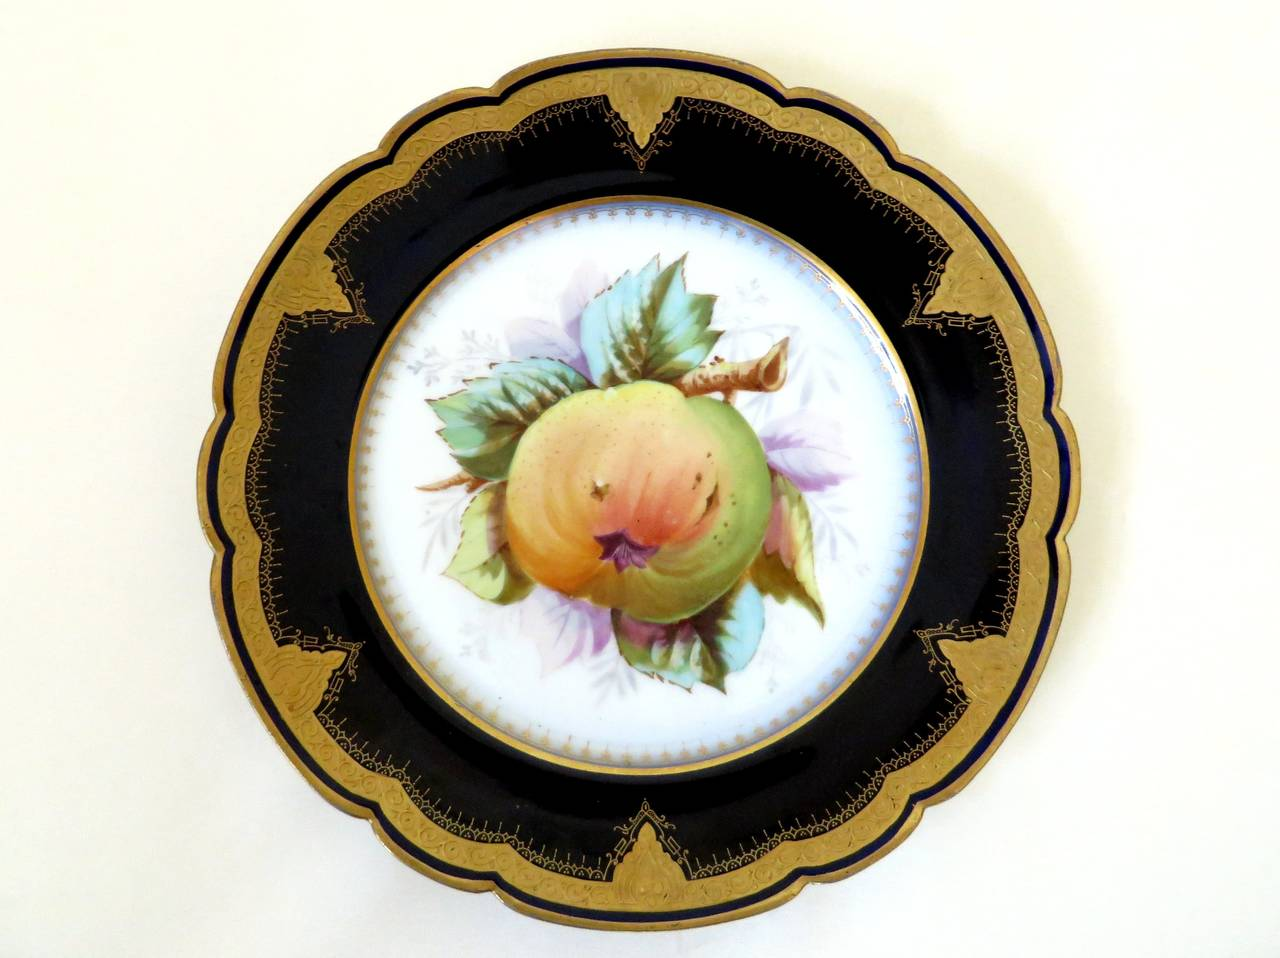 Six 19th century porcelain plates with beautifully decorated centers of different fruit varieties with cobalt blue rim and gold outlines.